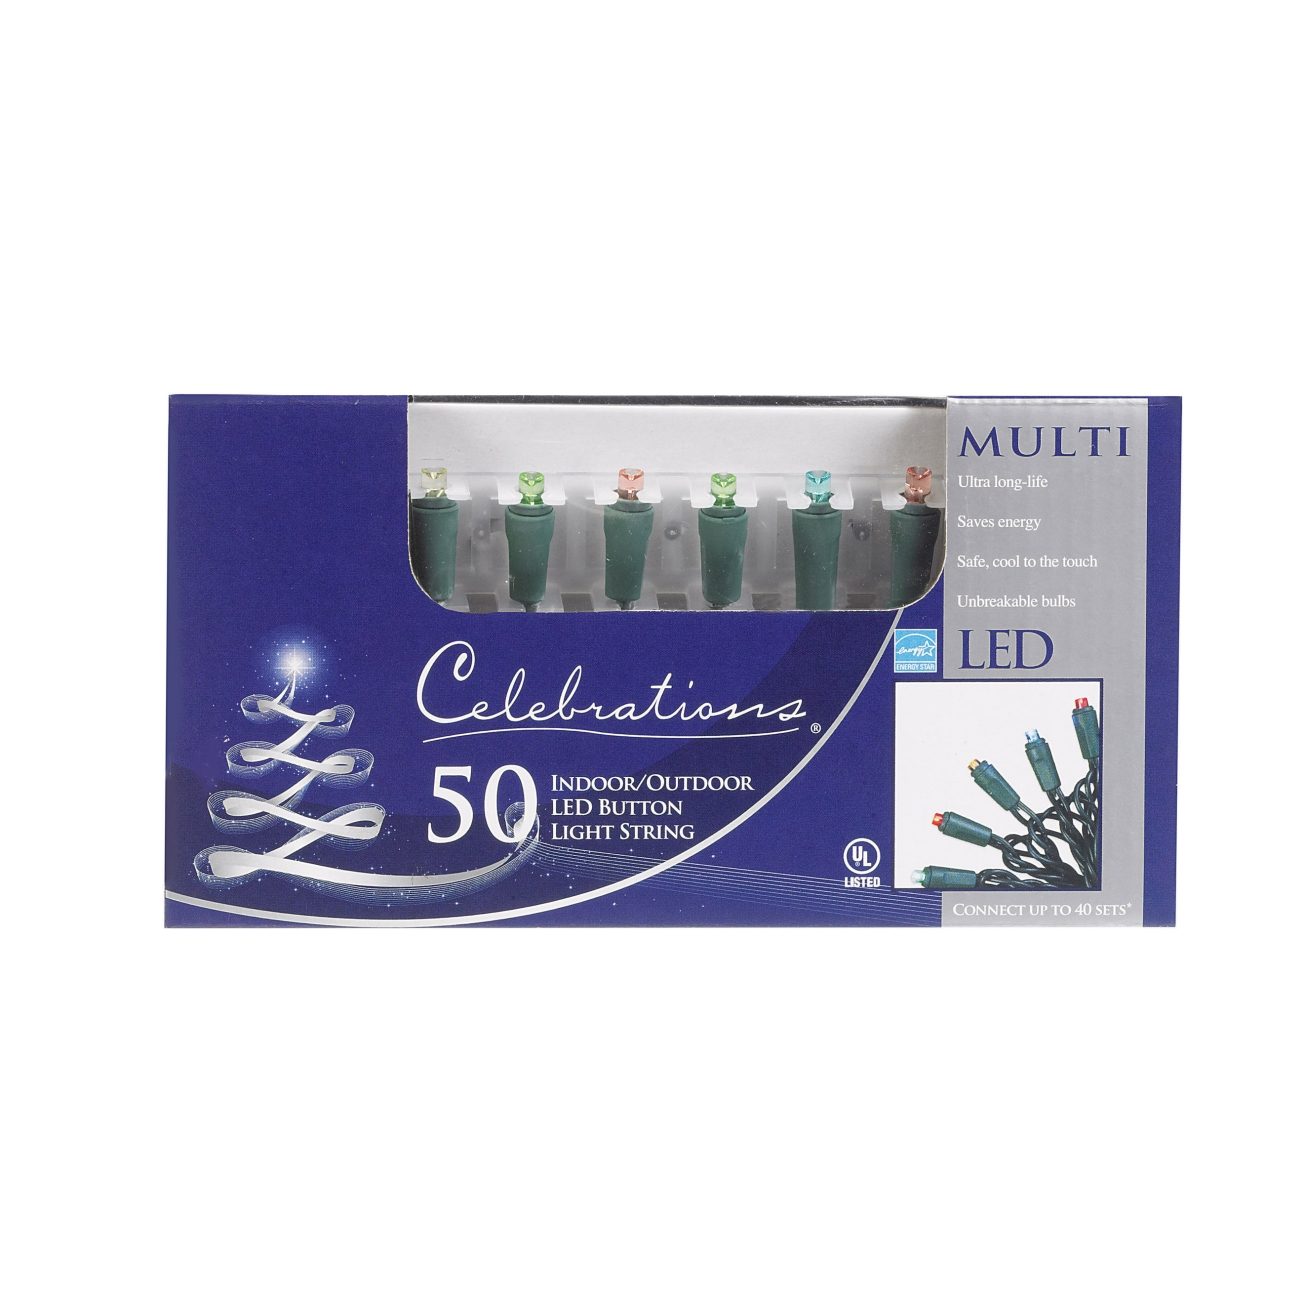 CELEBRATIONS 47621-71 LED Button Light Set, 17', 50 Multi-Color Lights, at Sears.com